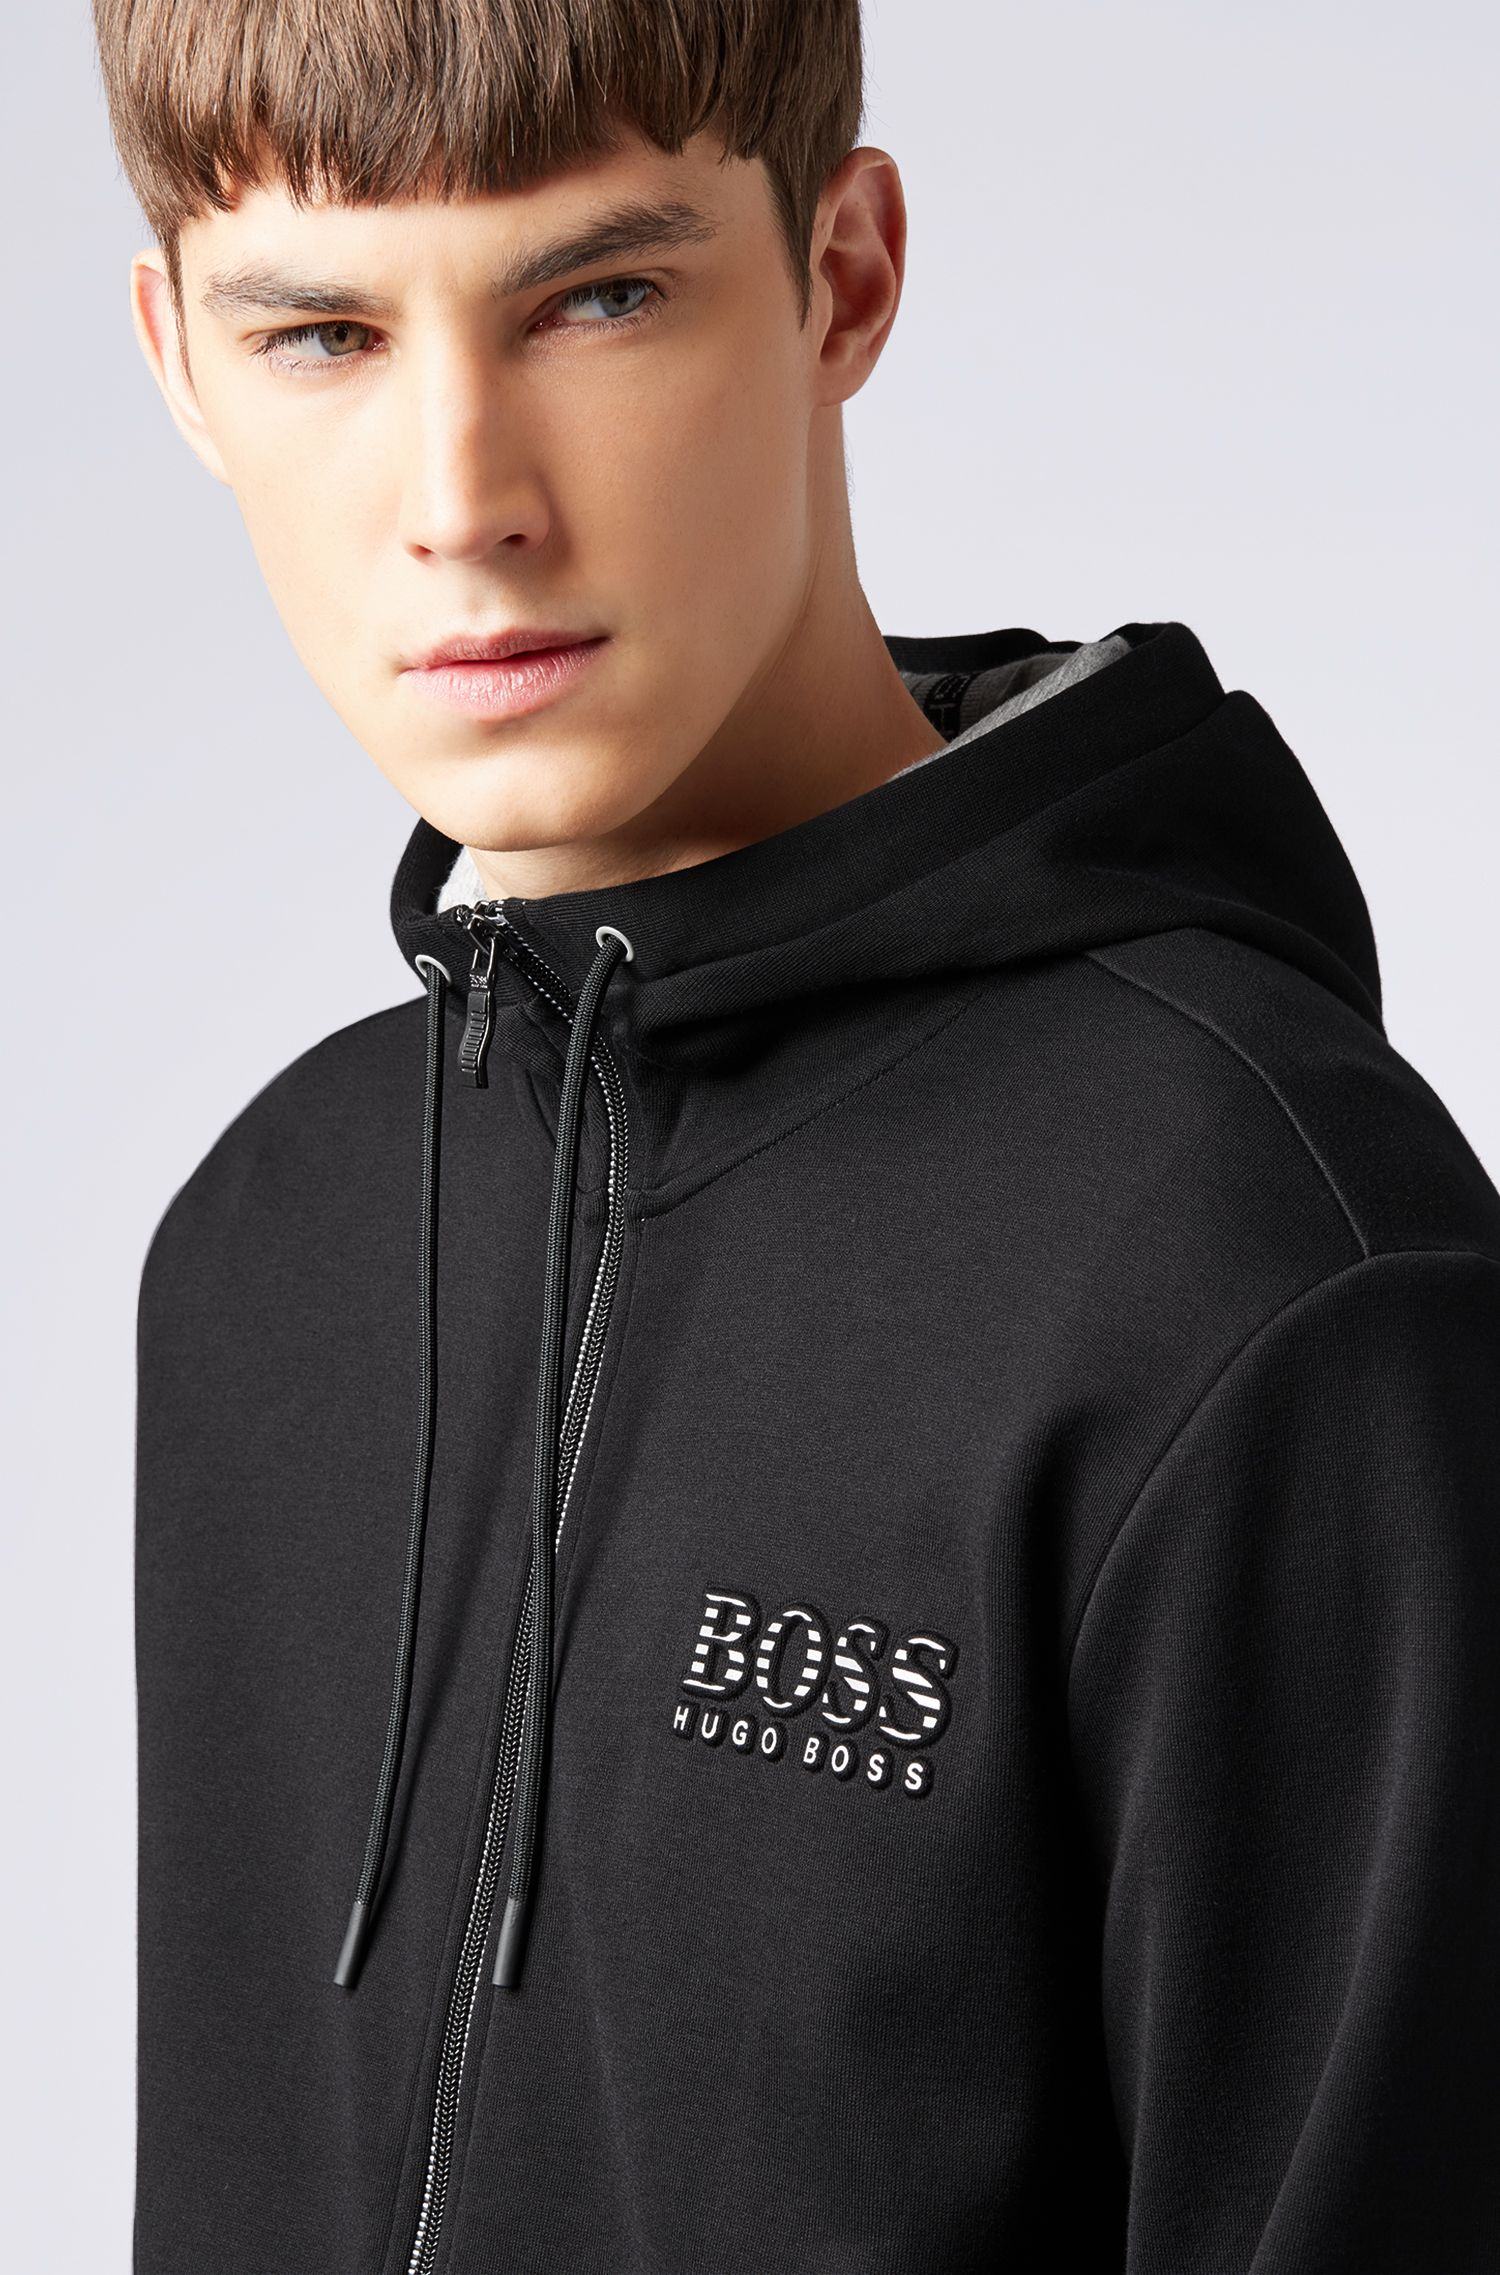 Hooded sweatshirt with logo and reflective detailing, Black